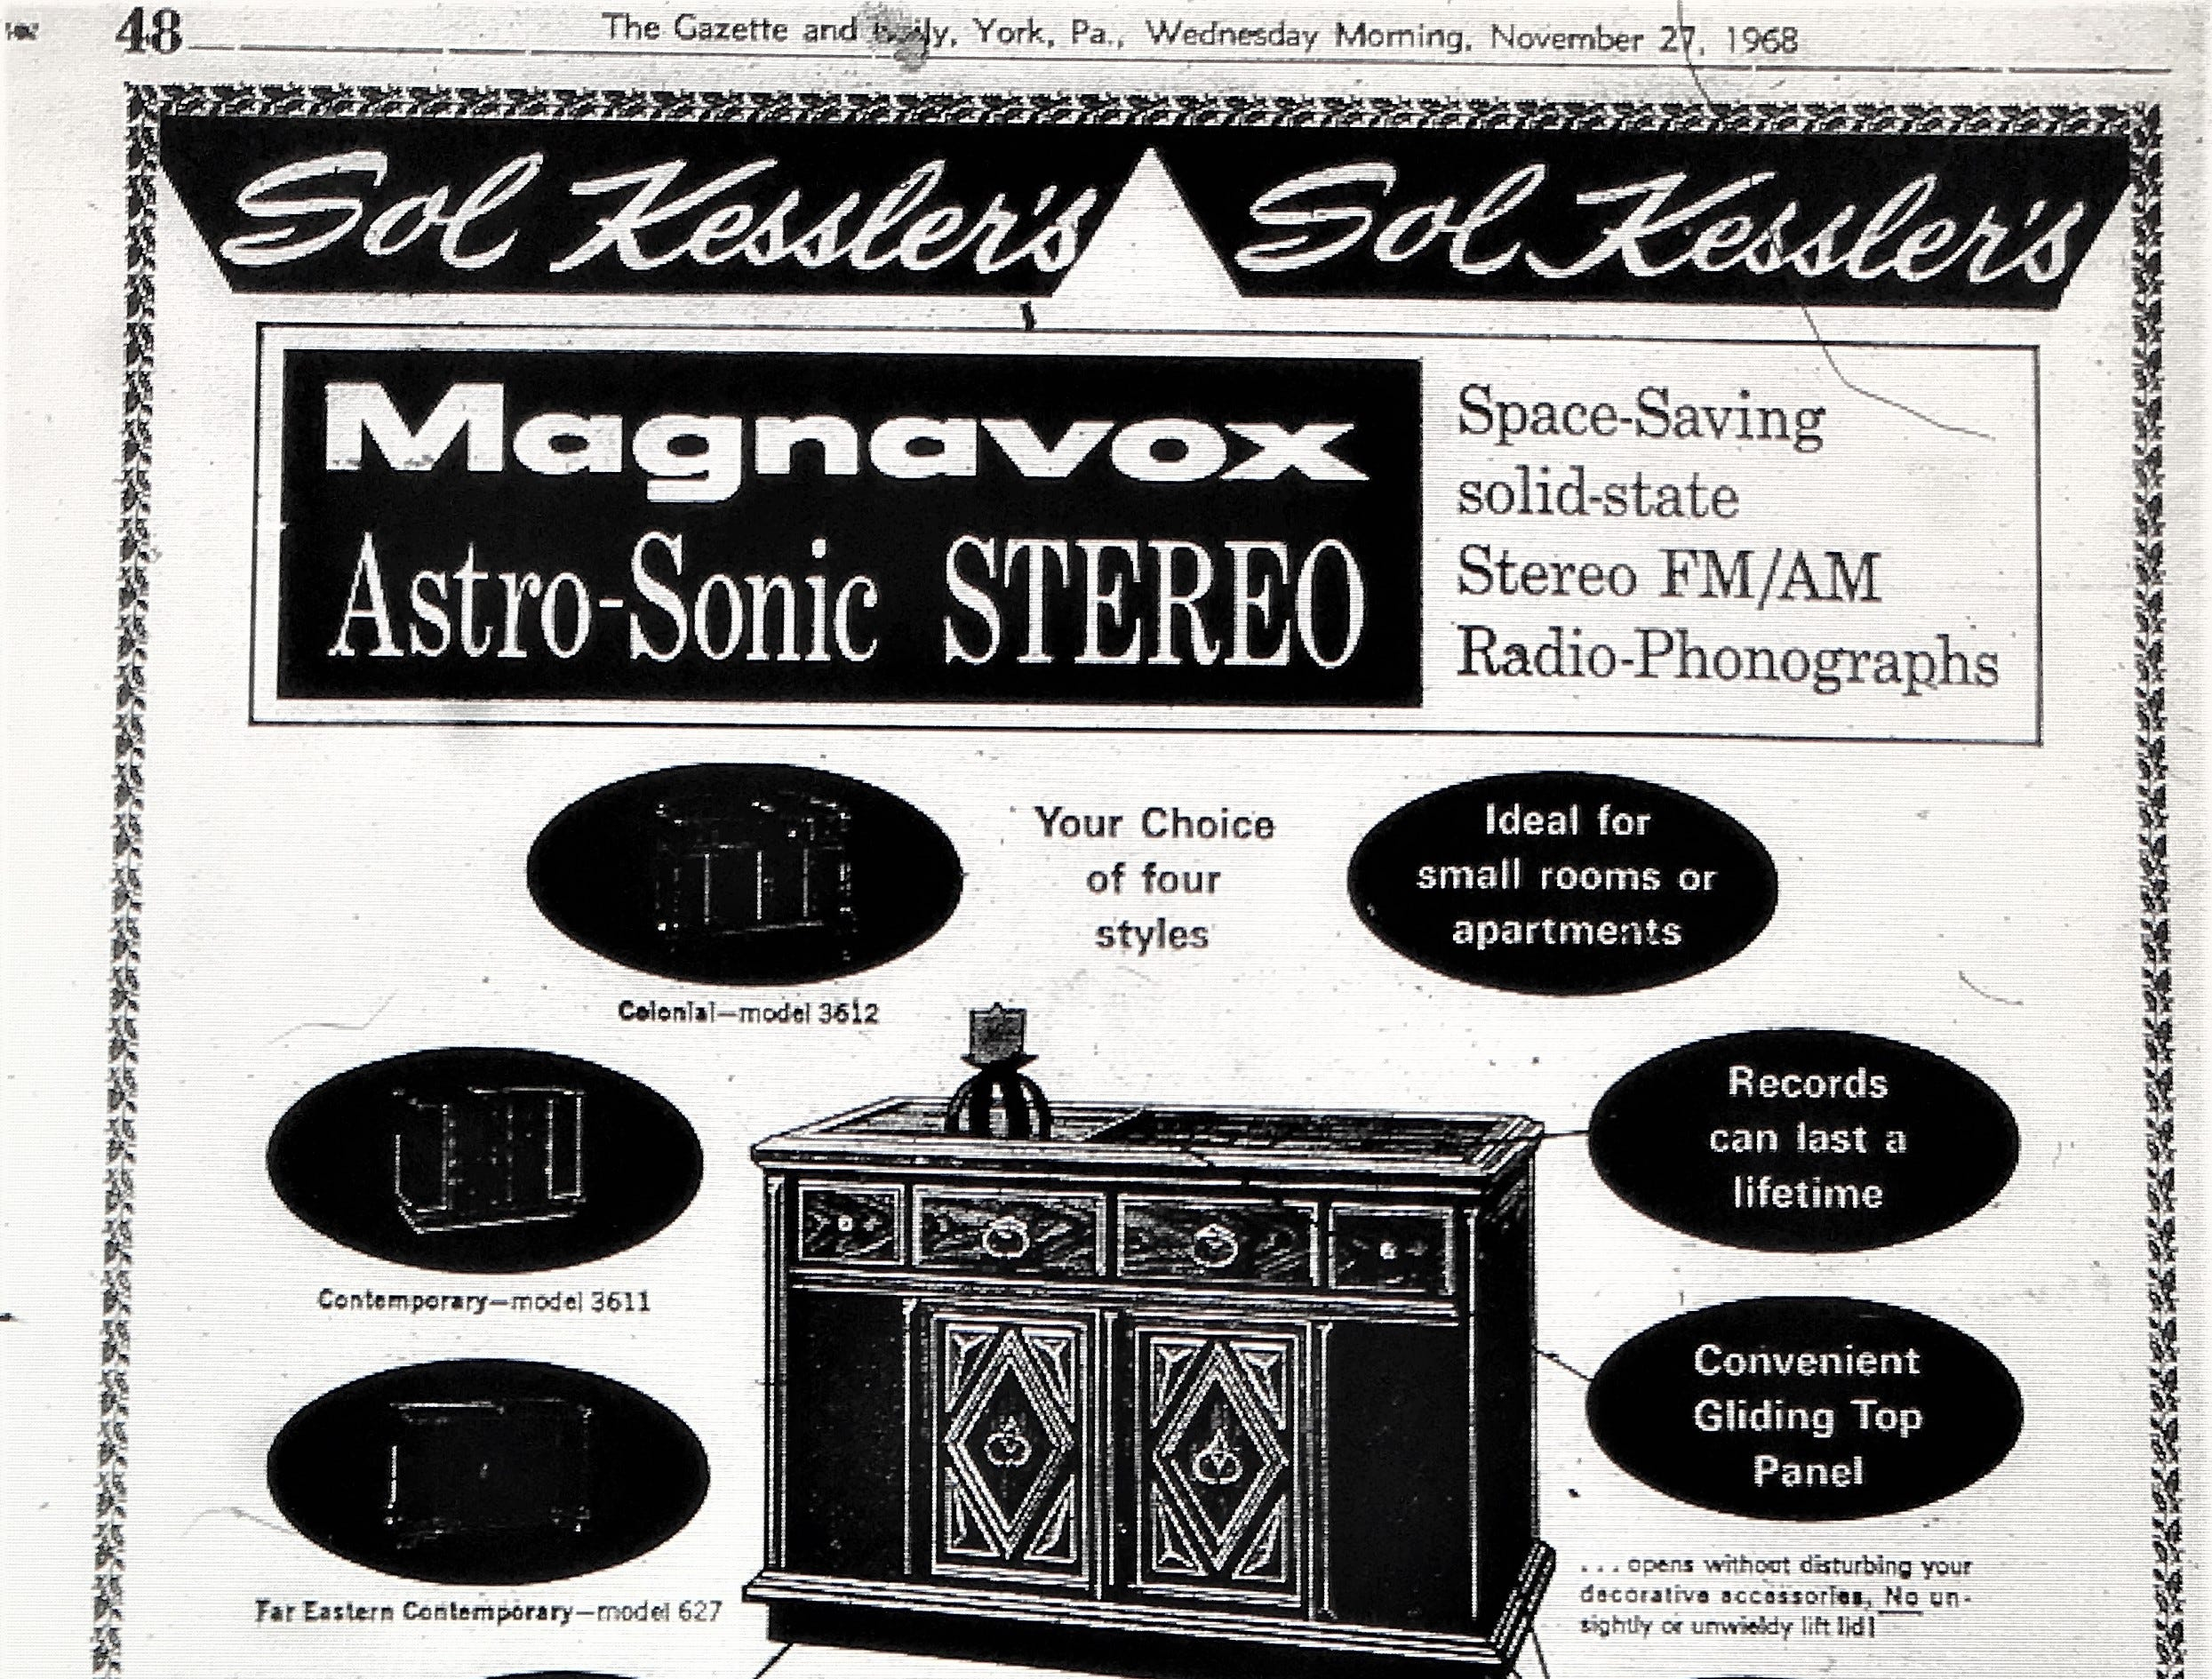 A 1968 ad for Sol Kessler's electronics and record store. The store was located at 120-126 S. George Street.The ad appeared in the York Gazette and Daily on Wednesday, November 27, 1968.